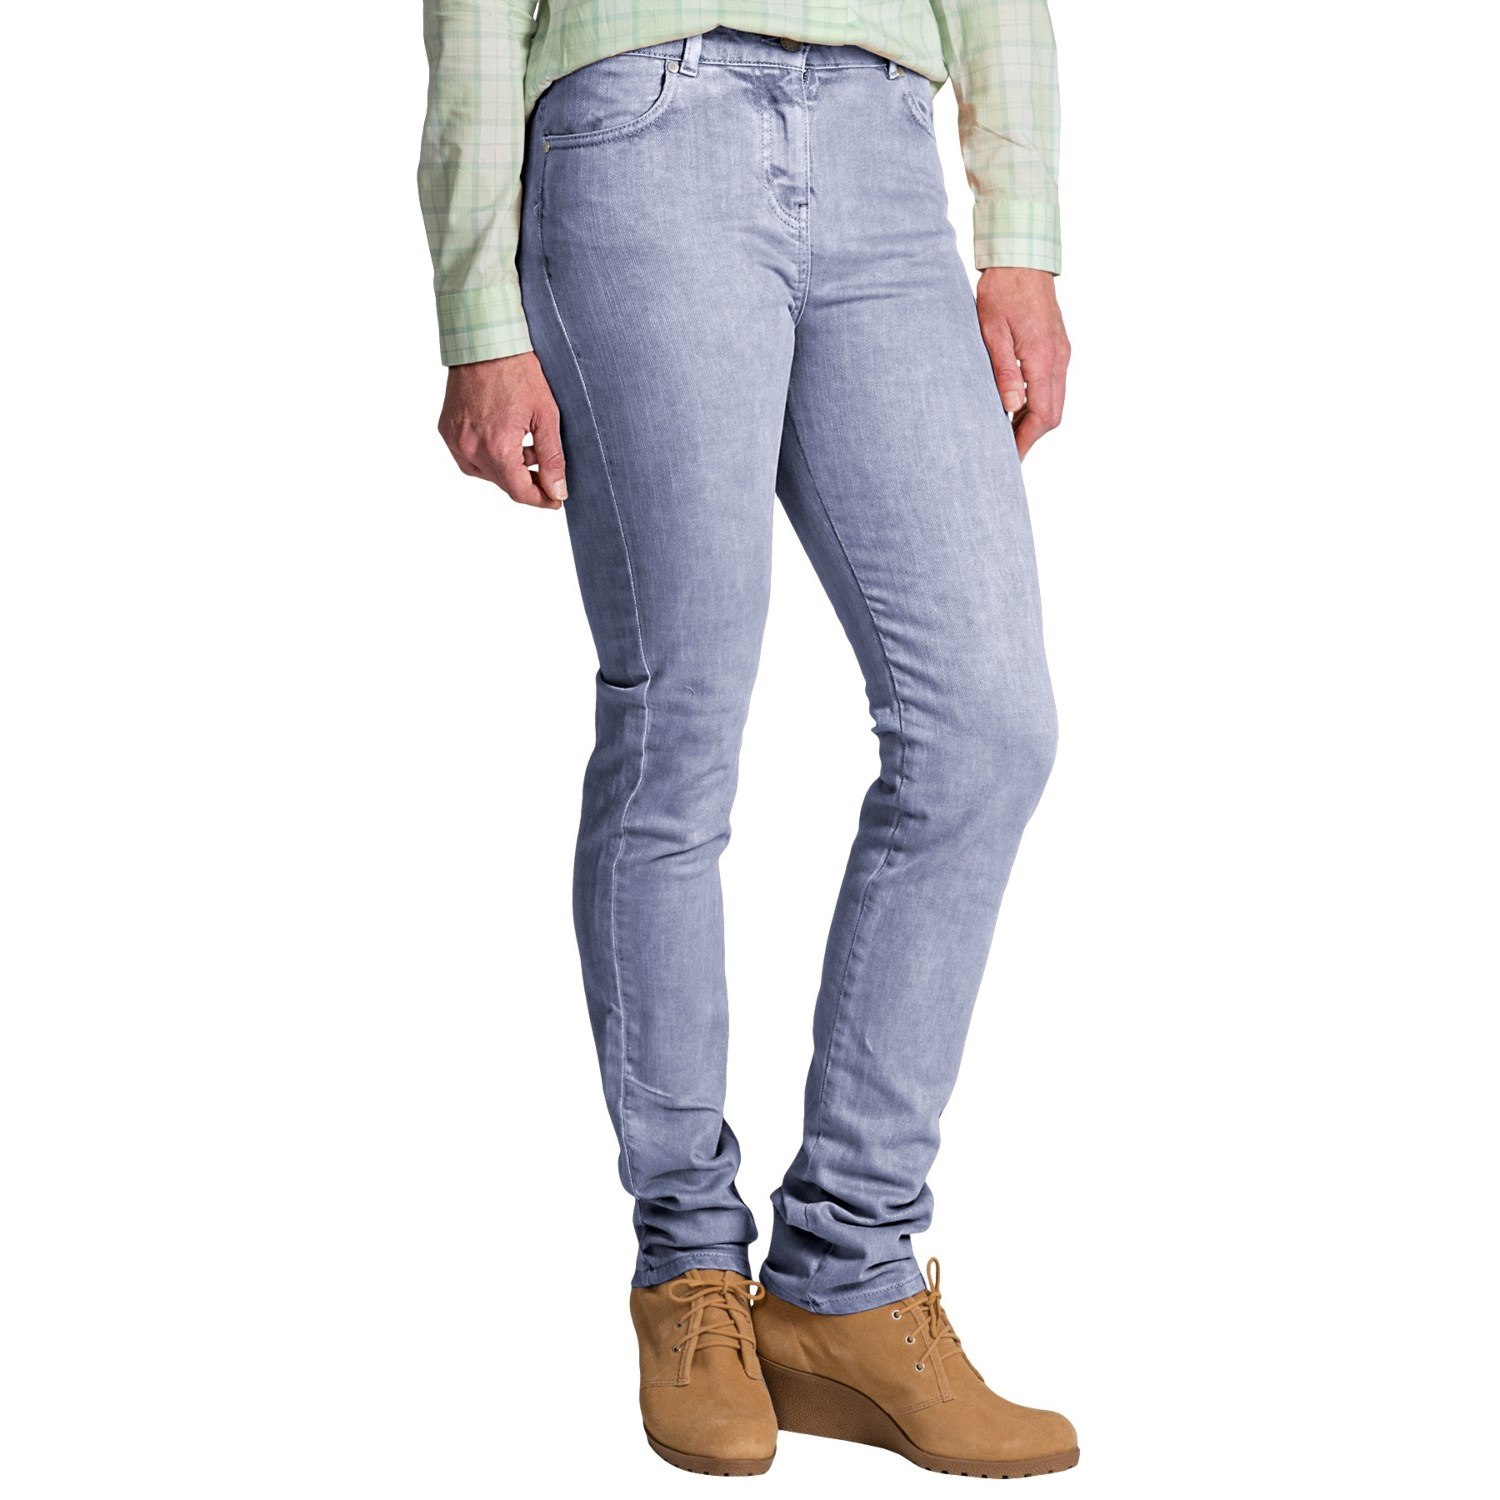 Barbour Rampside Stretch Twill Pants (For Women) - Save 61%